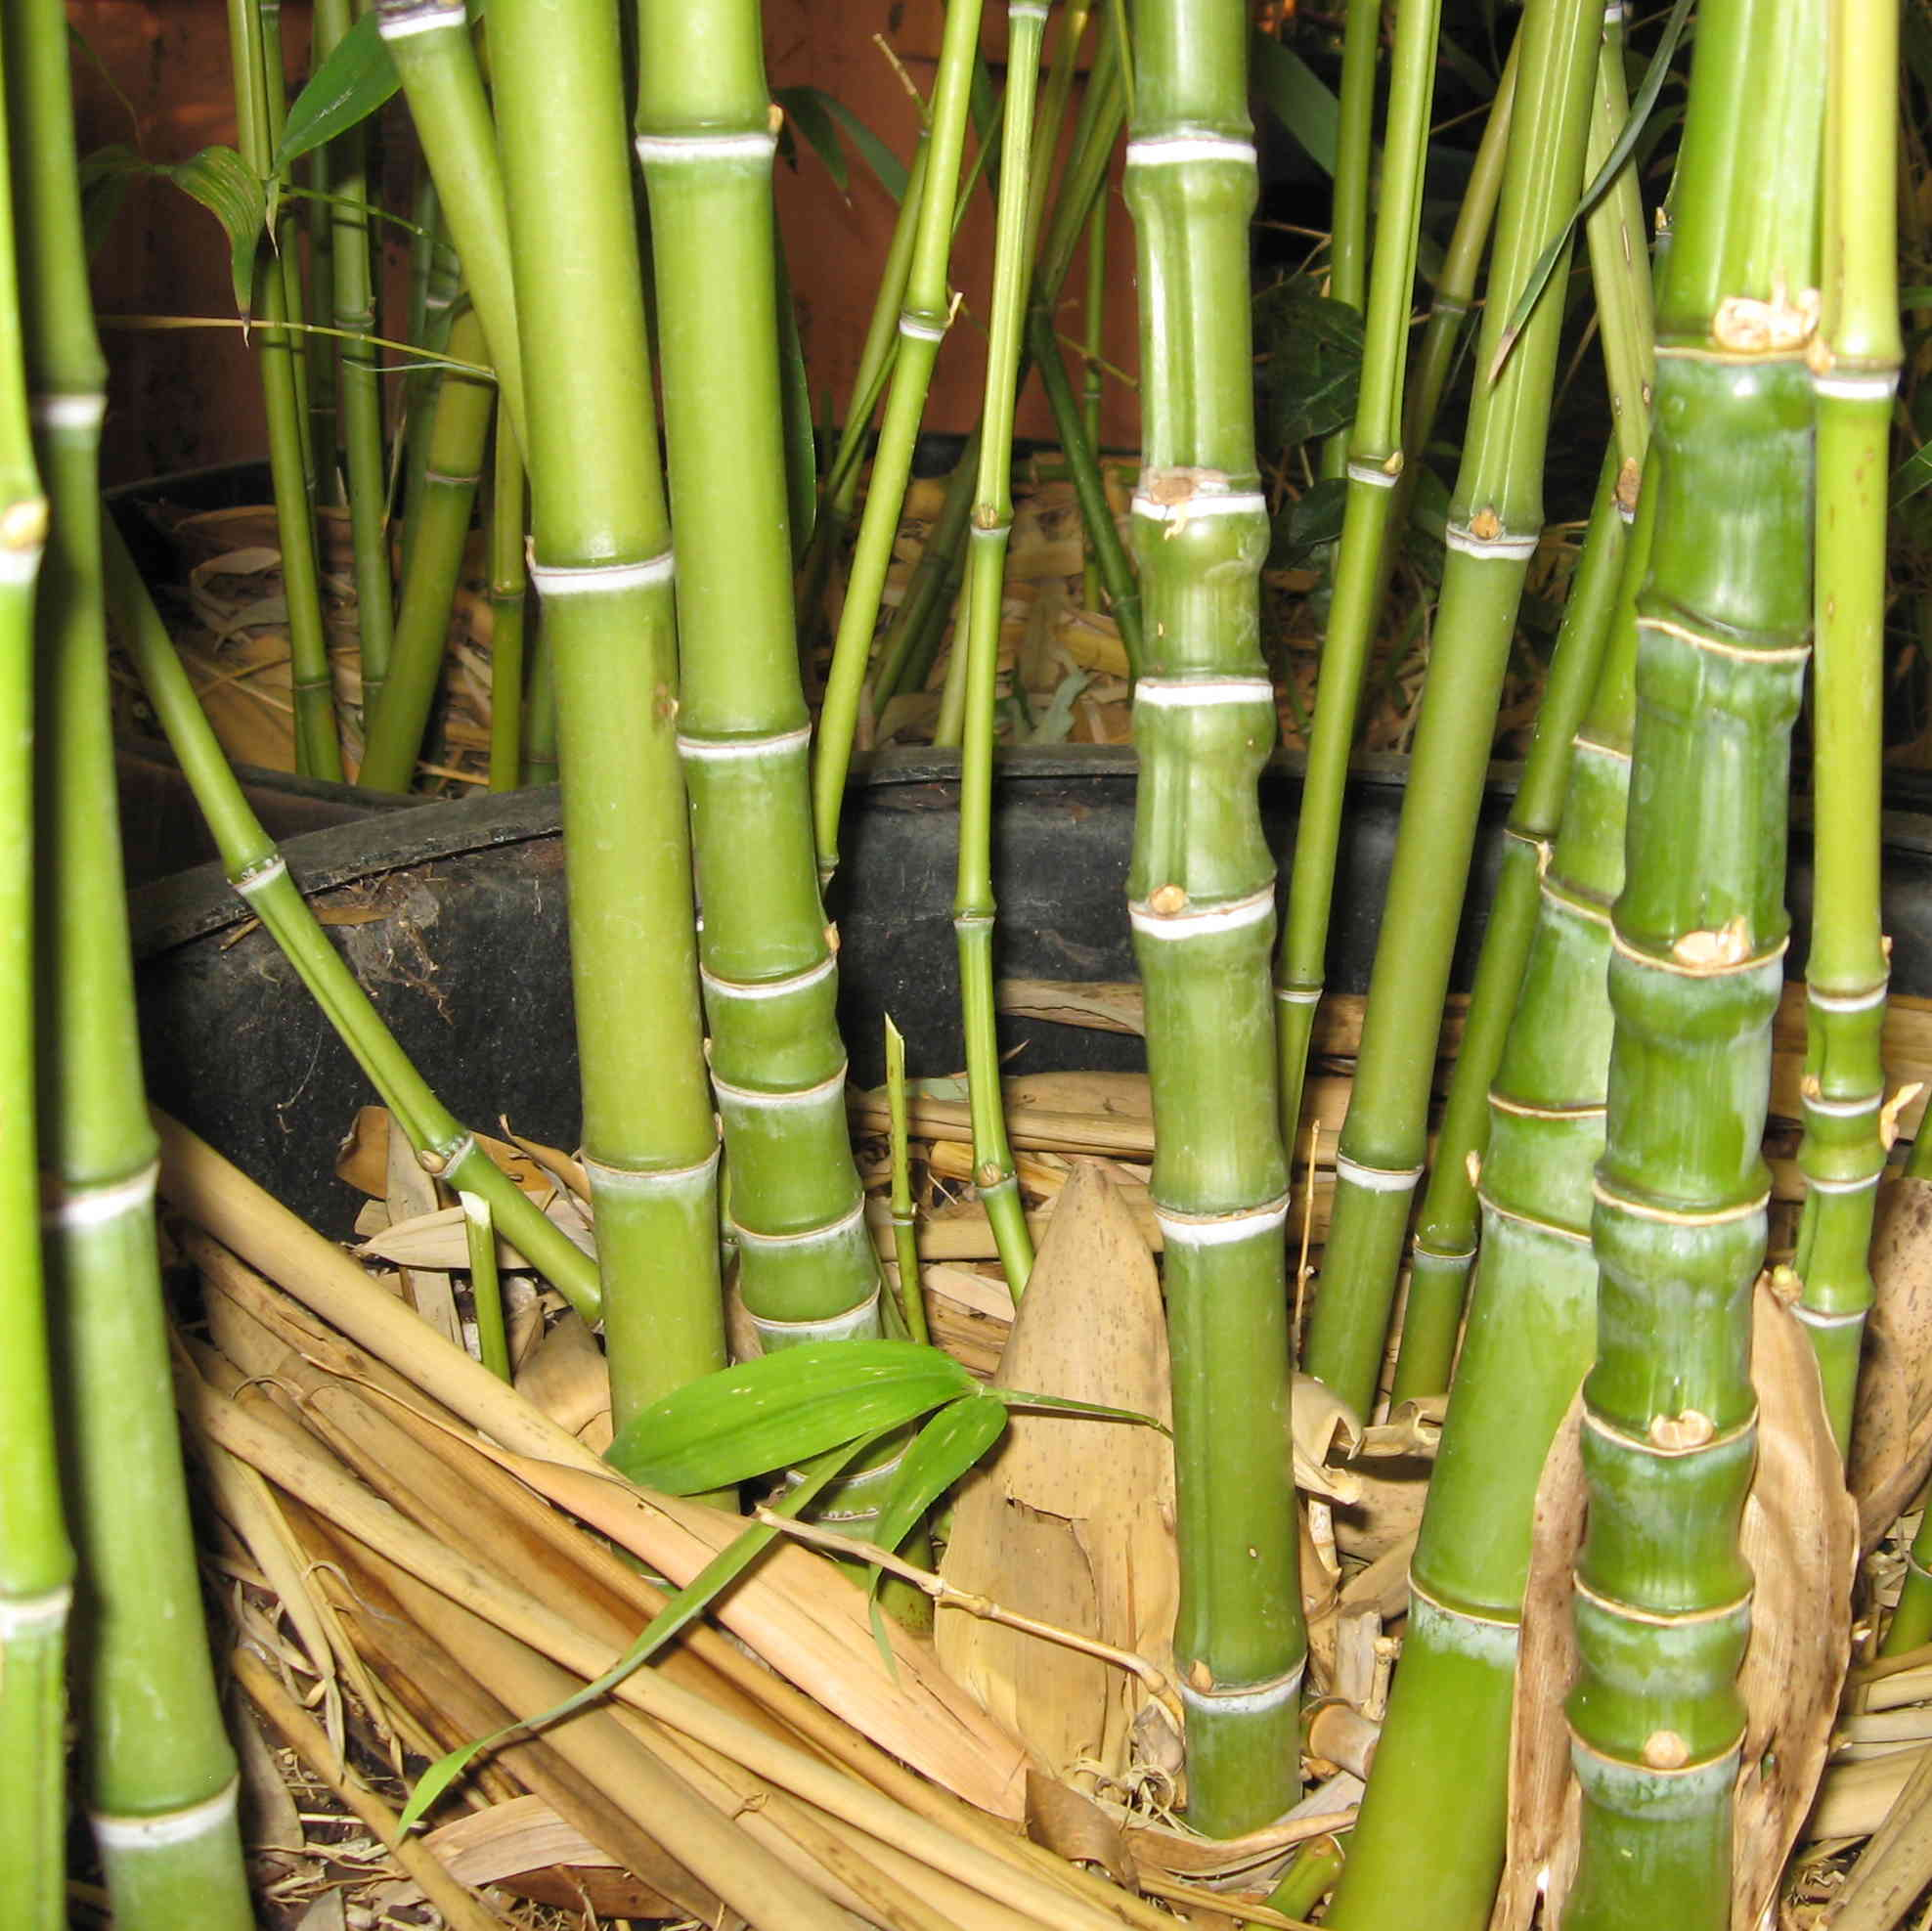 Peculiar Winter Black Spots Bamboo Turning Yellow Rated To By American Bamboo Minimum Usda Zone Selectthis Link To Find Your Usda Plant Hardiness Davis Bamboo Species List Bamboo Turning Yellow houzz-03 Bamboo Turning Yellow